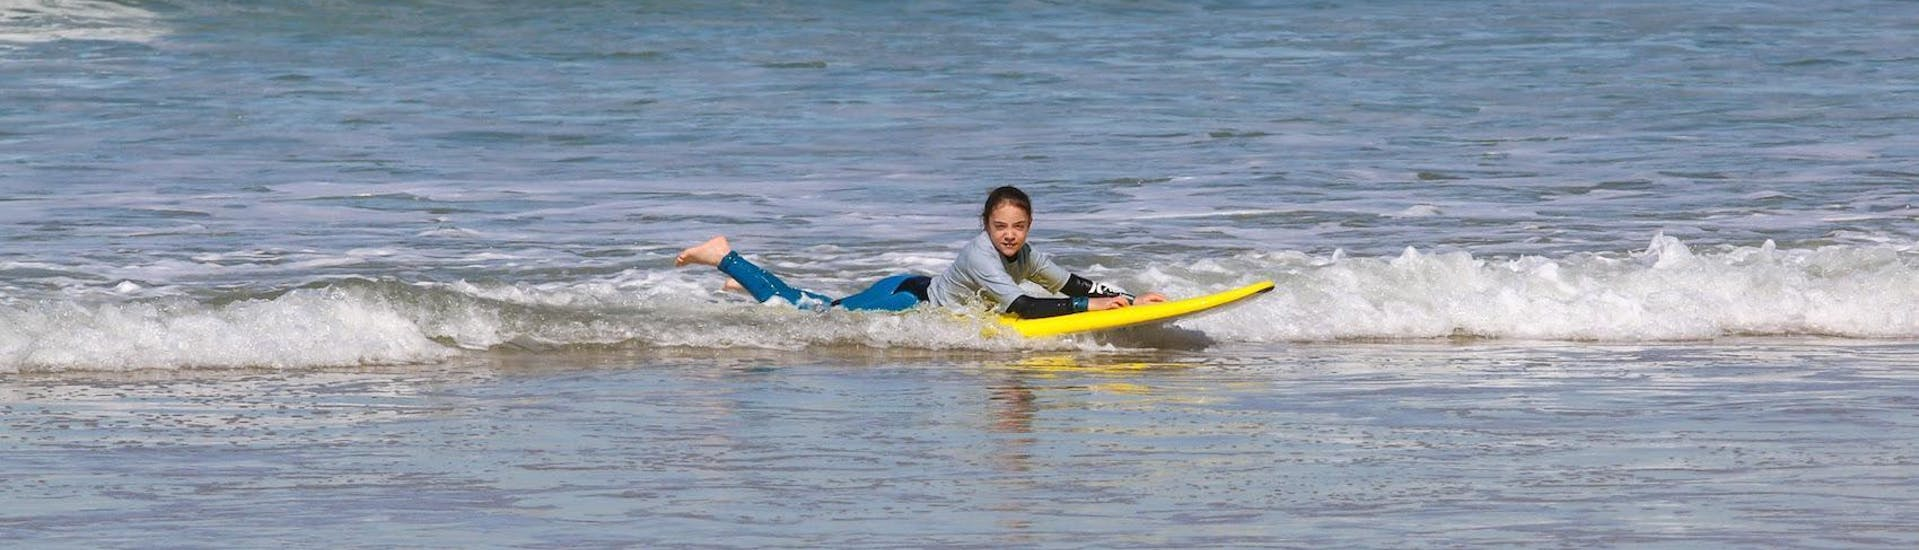 private-surfing-lessons-plage-centrale-all-levels-ocean-experience-lacanau-hero